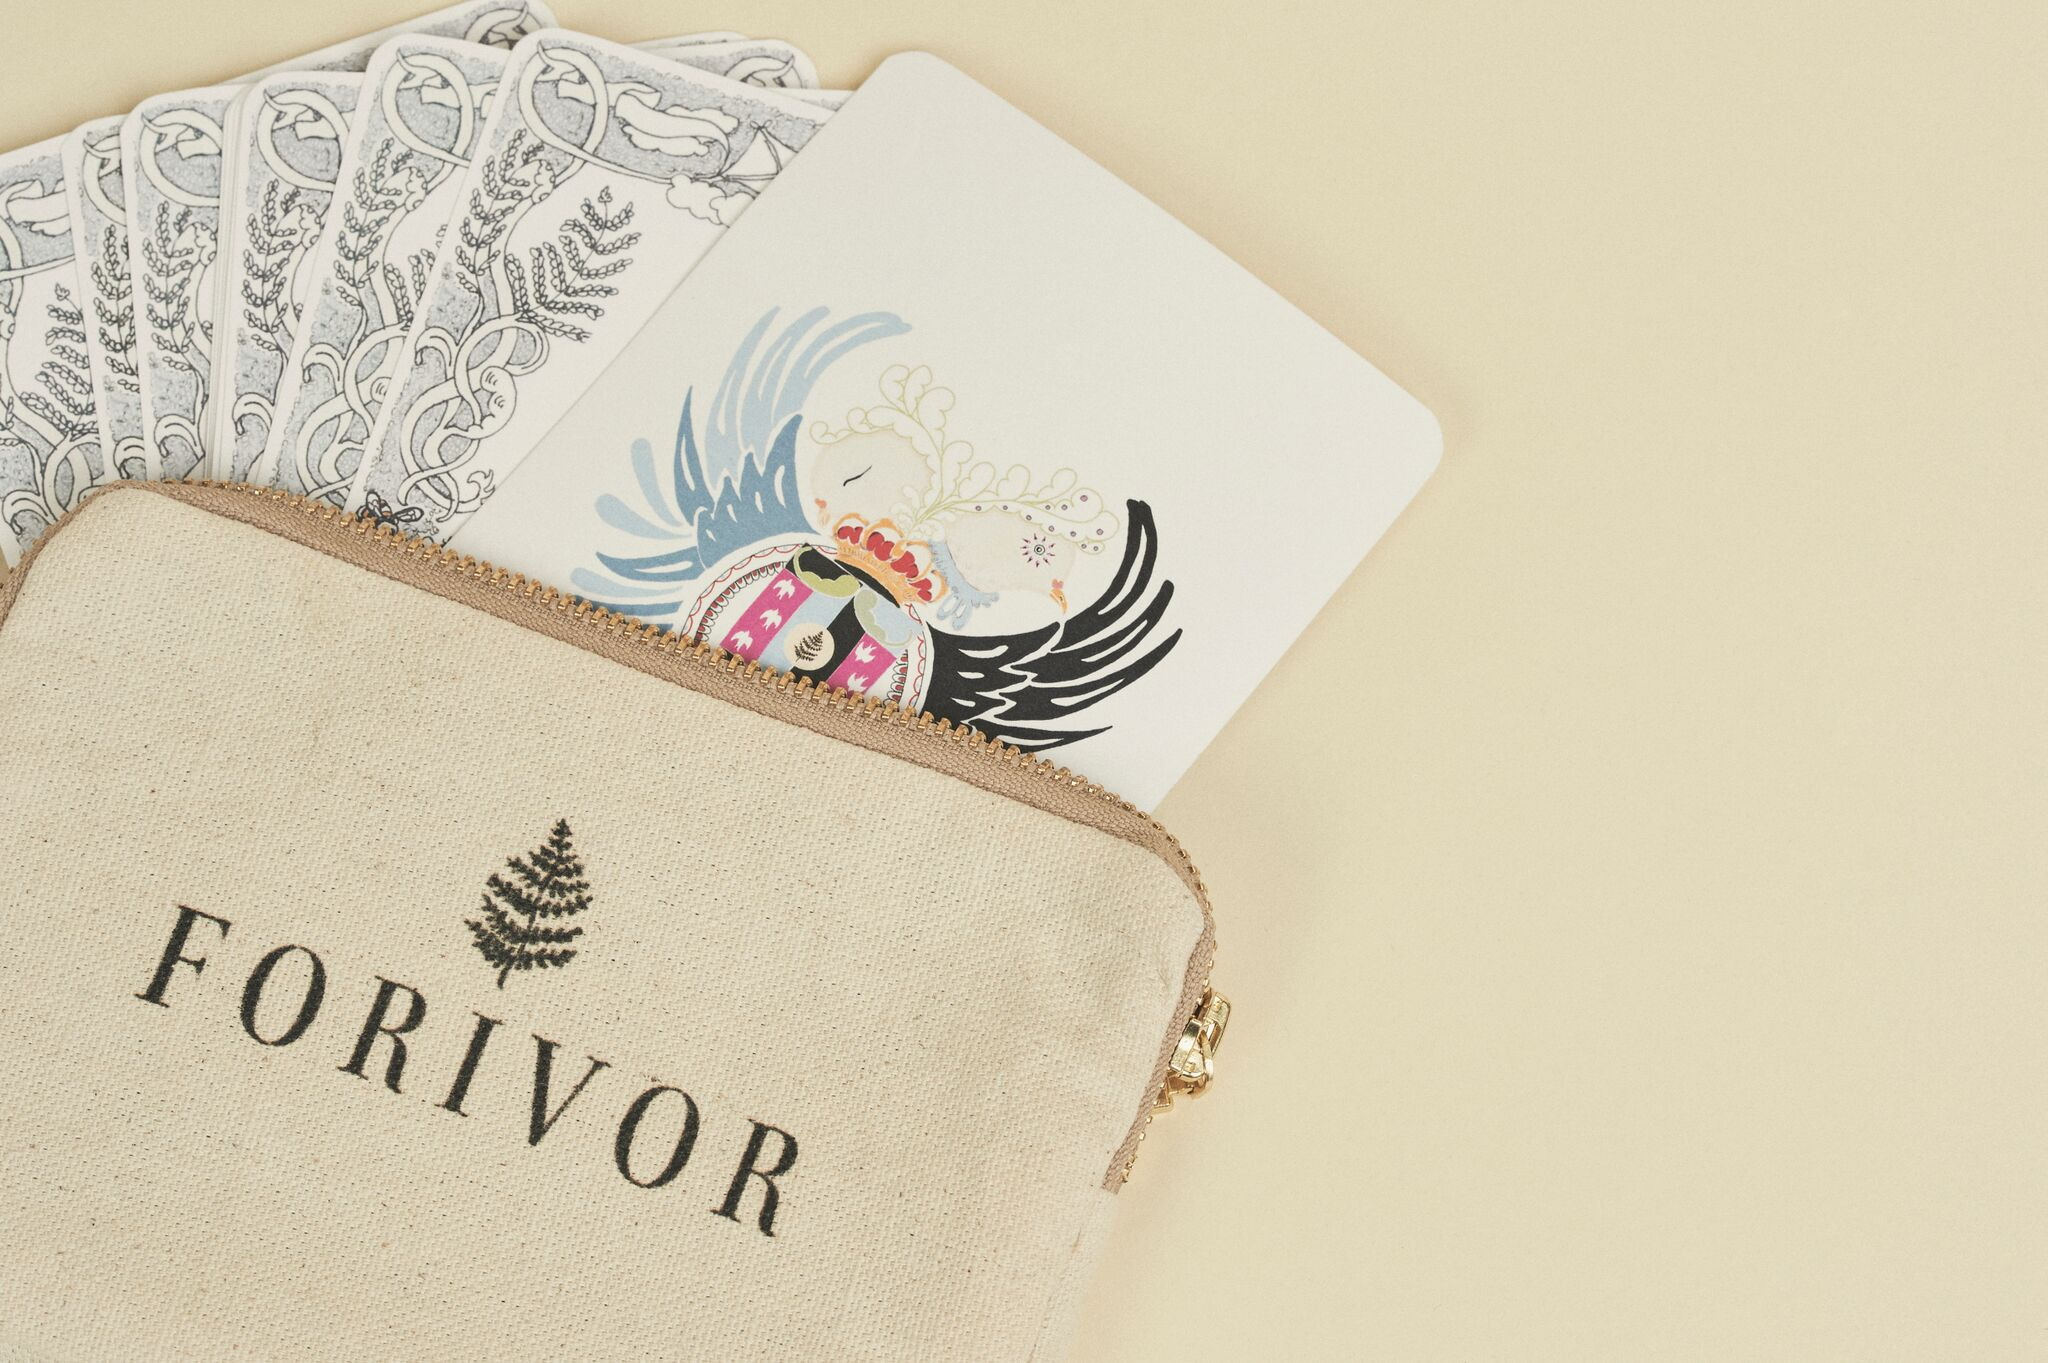 Character cards in a cotton bag